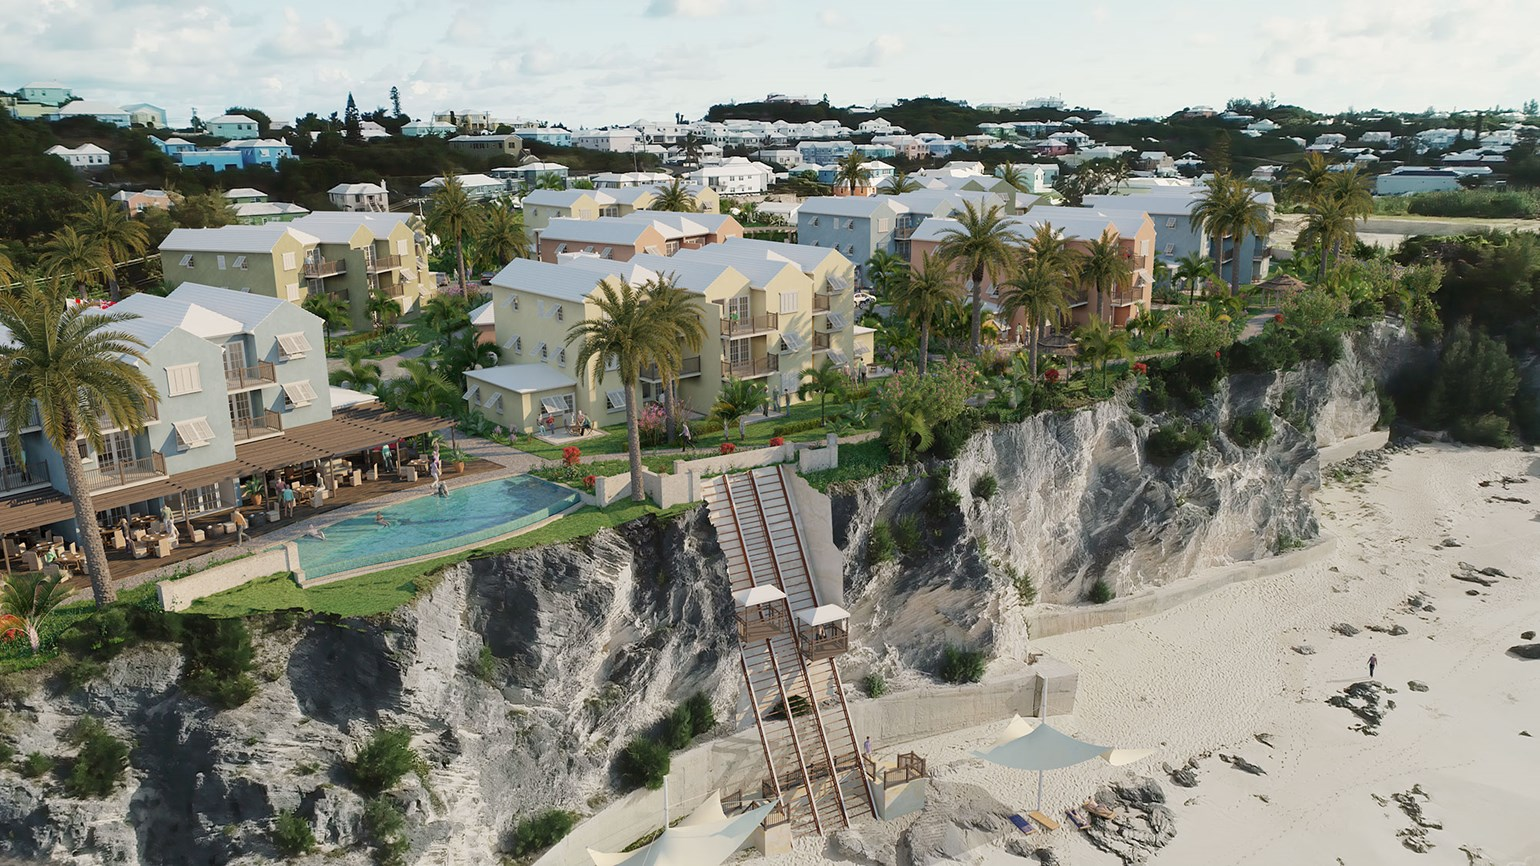 A look at Bermuda in 2020